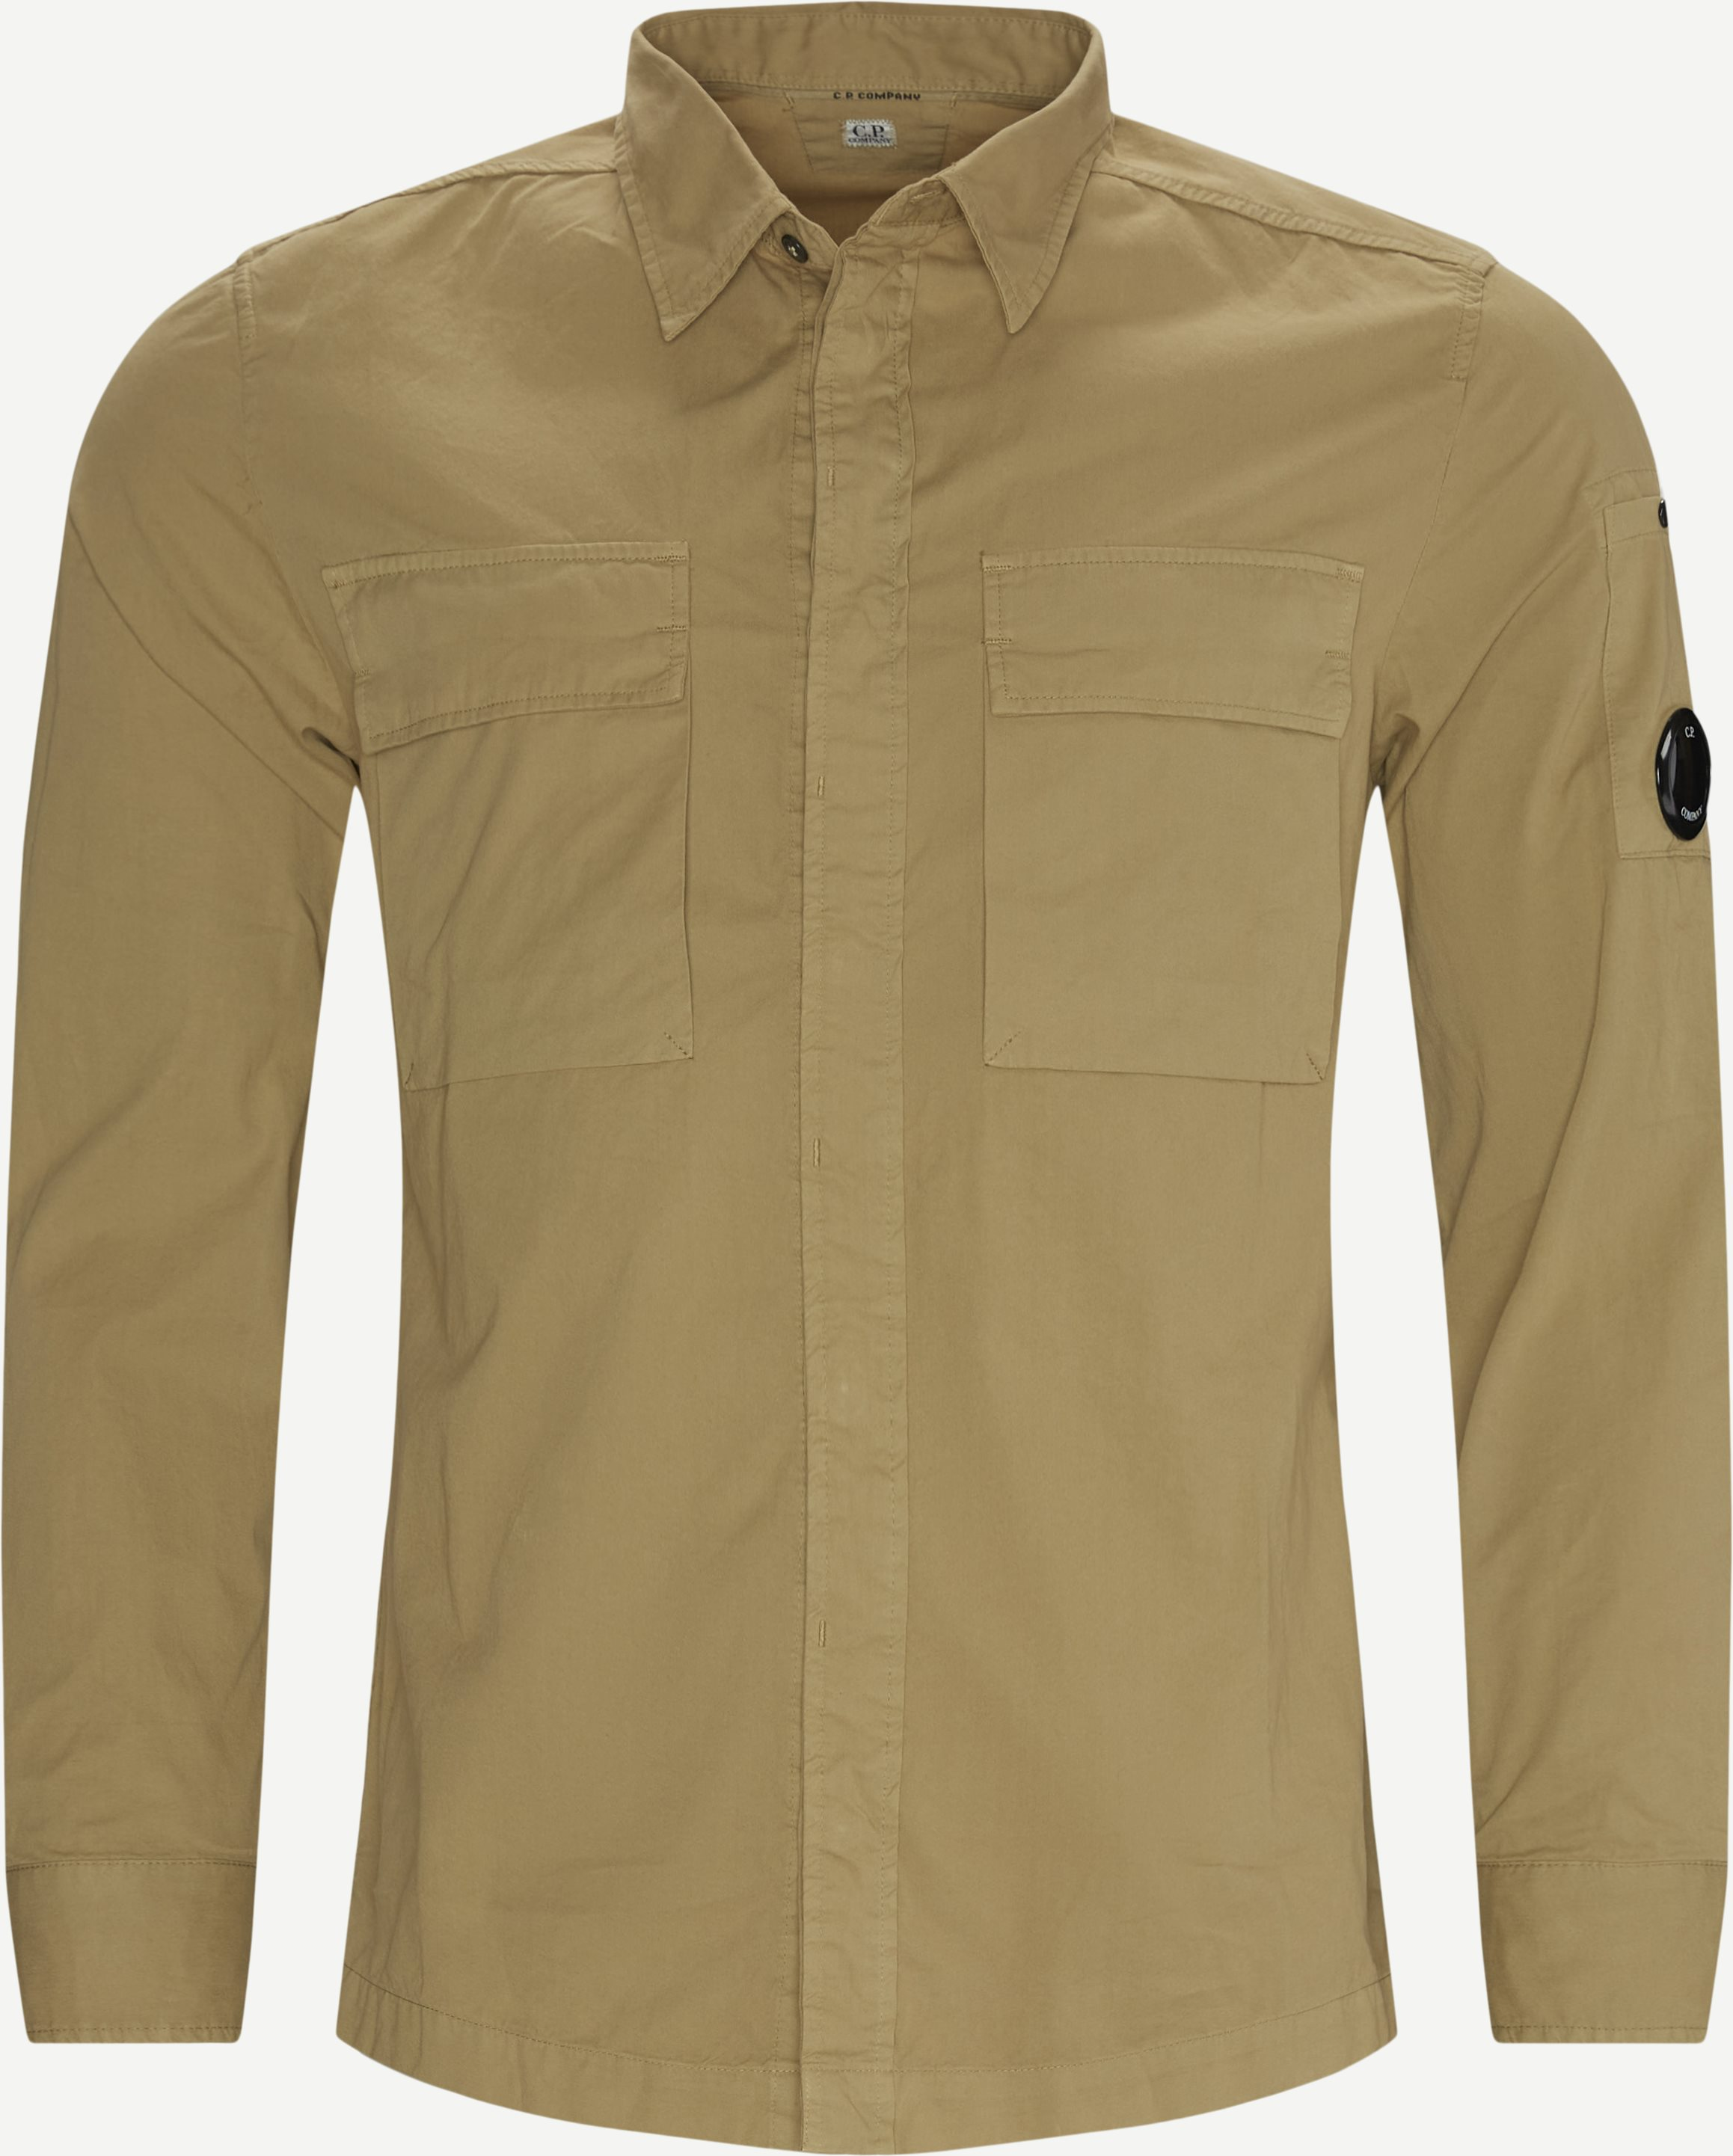 Emerized Gabardine Garment Dyed Shirt - Skjortor - Regular - Sand